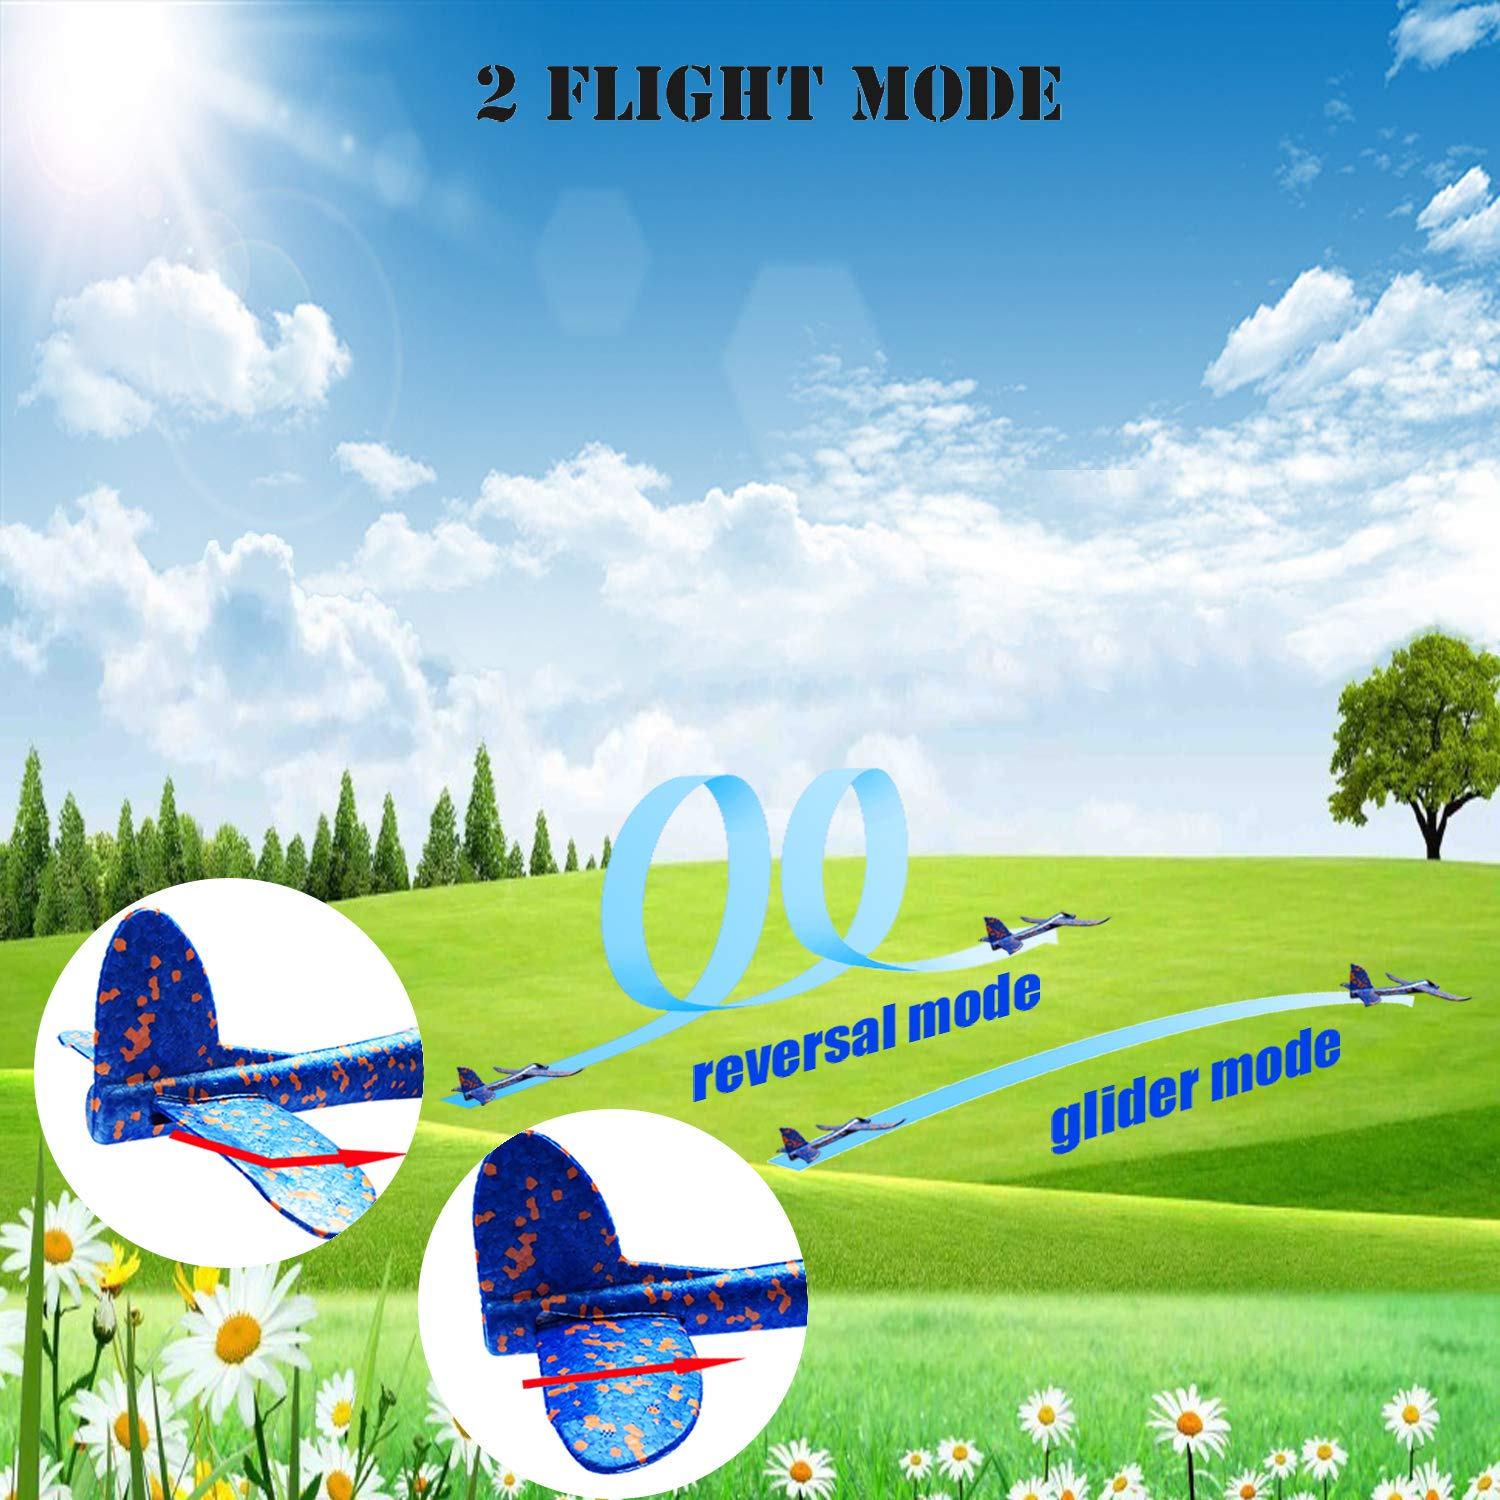 MIMIDOU 4 Pcs Catapult Slingshot Plane 2 Flight Mode Glider Airplane 2 Ways to Play Outdoor Flying Toy for Kids as Gift. by MIMIDOU (Image #3)